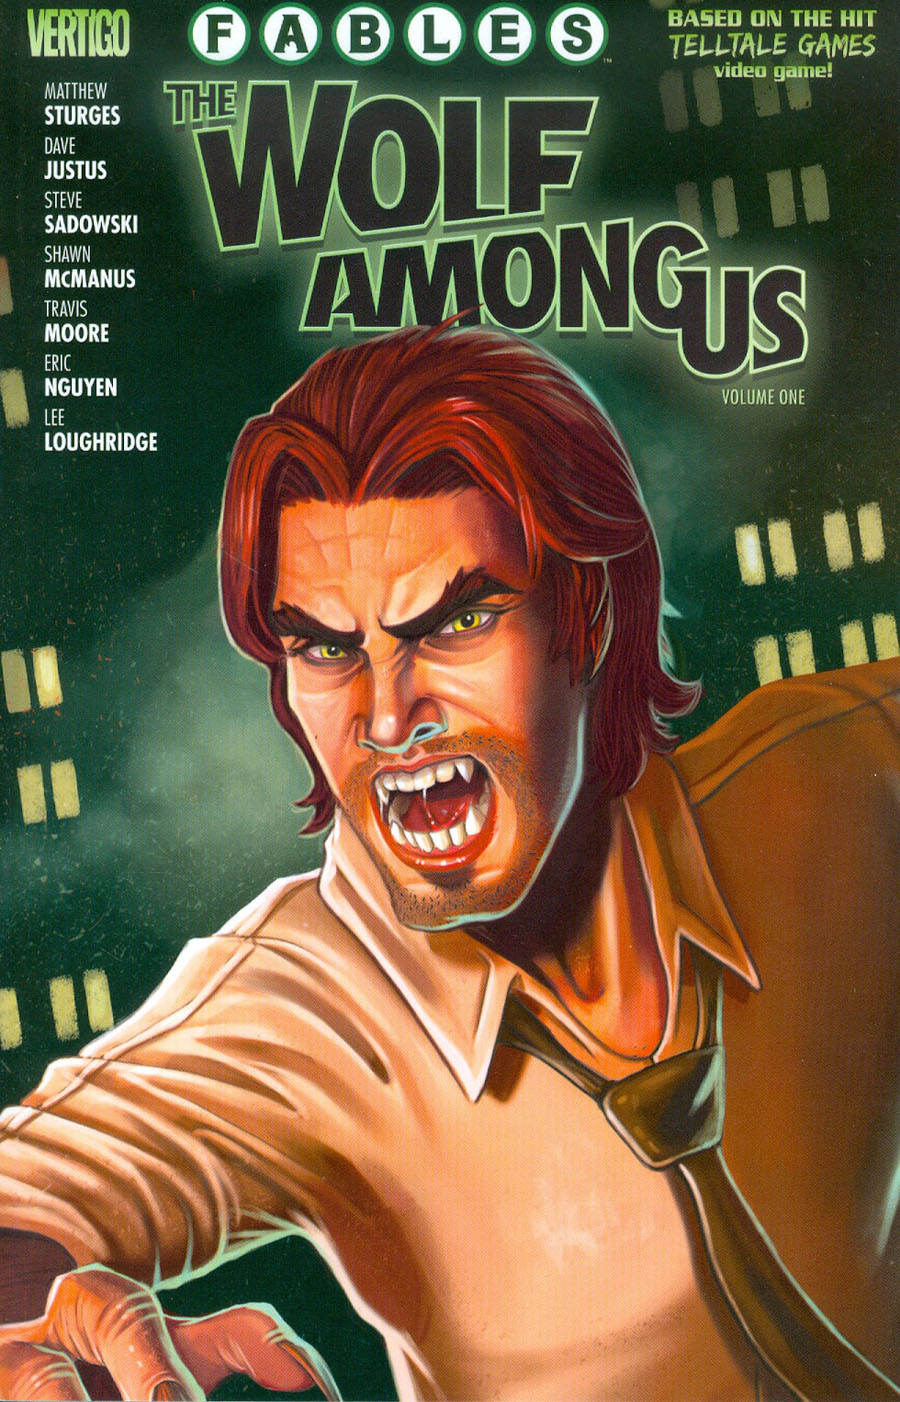 Fables The Wolf Among Us Vol 1 TP